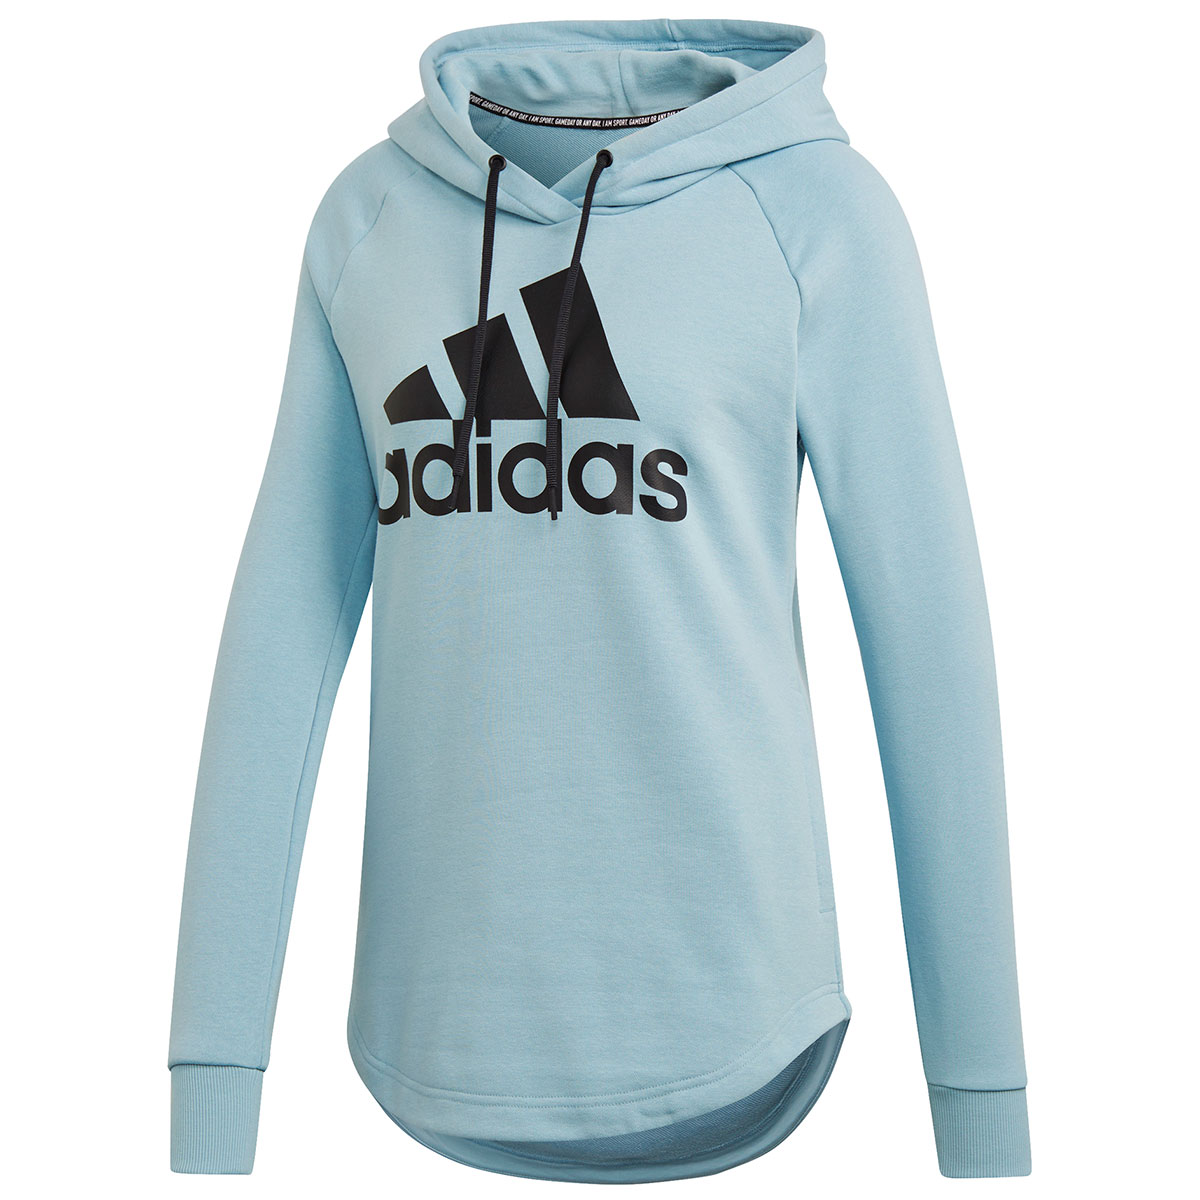 Adidas Women's Must Haves Badge Of Sport Hoody - Blue, XL